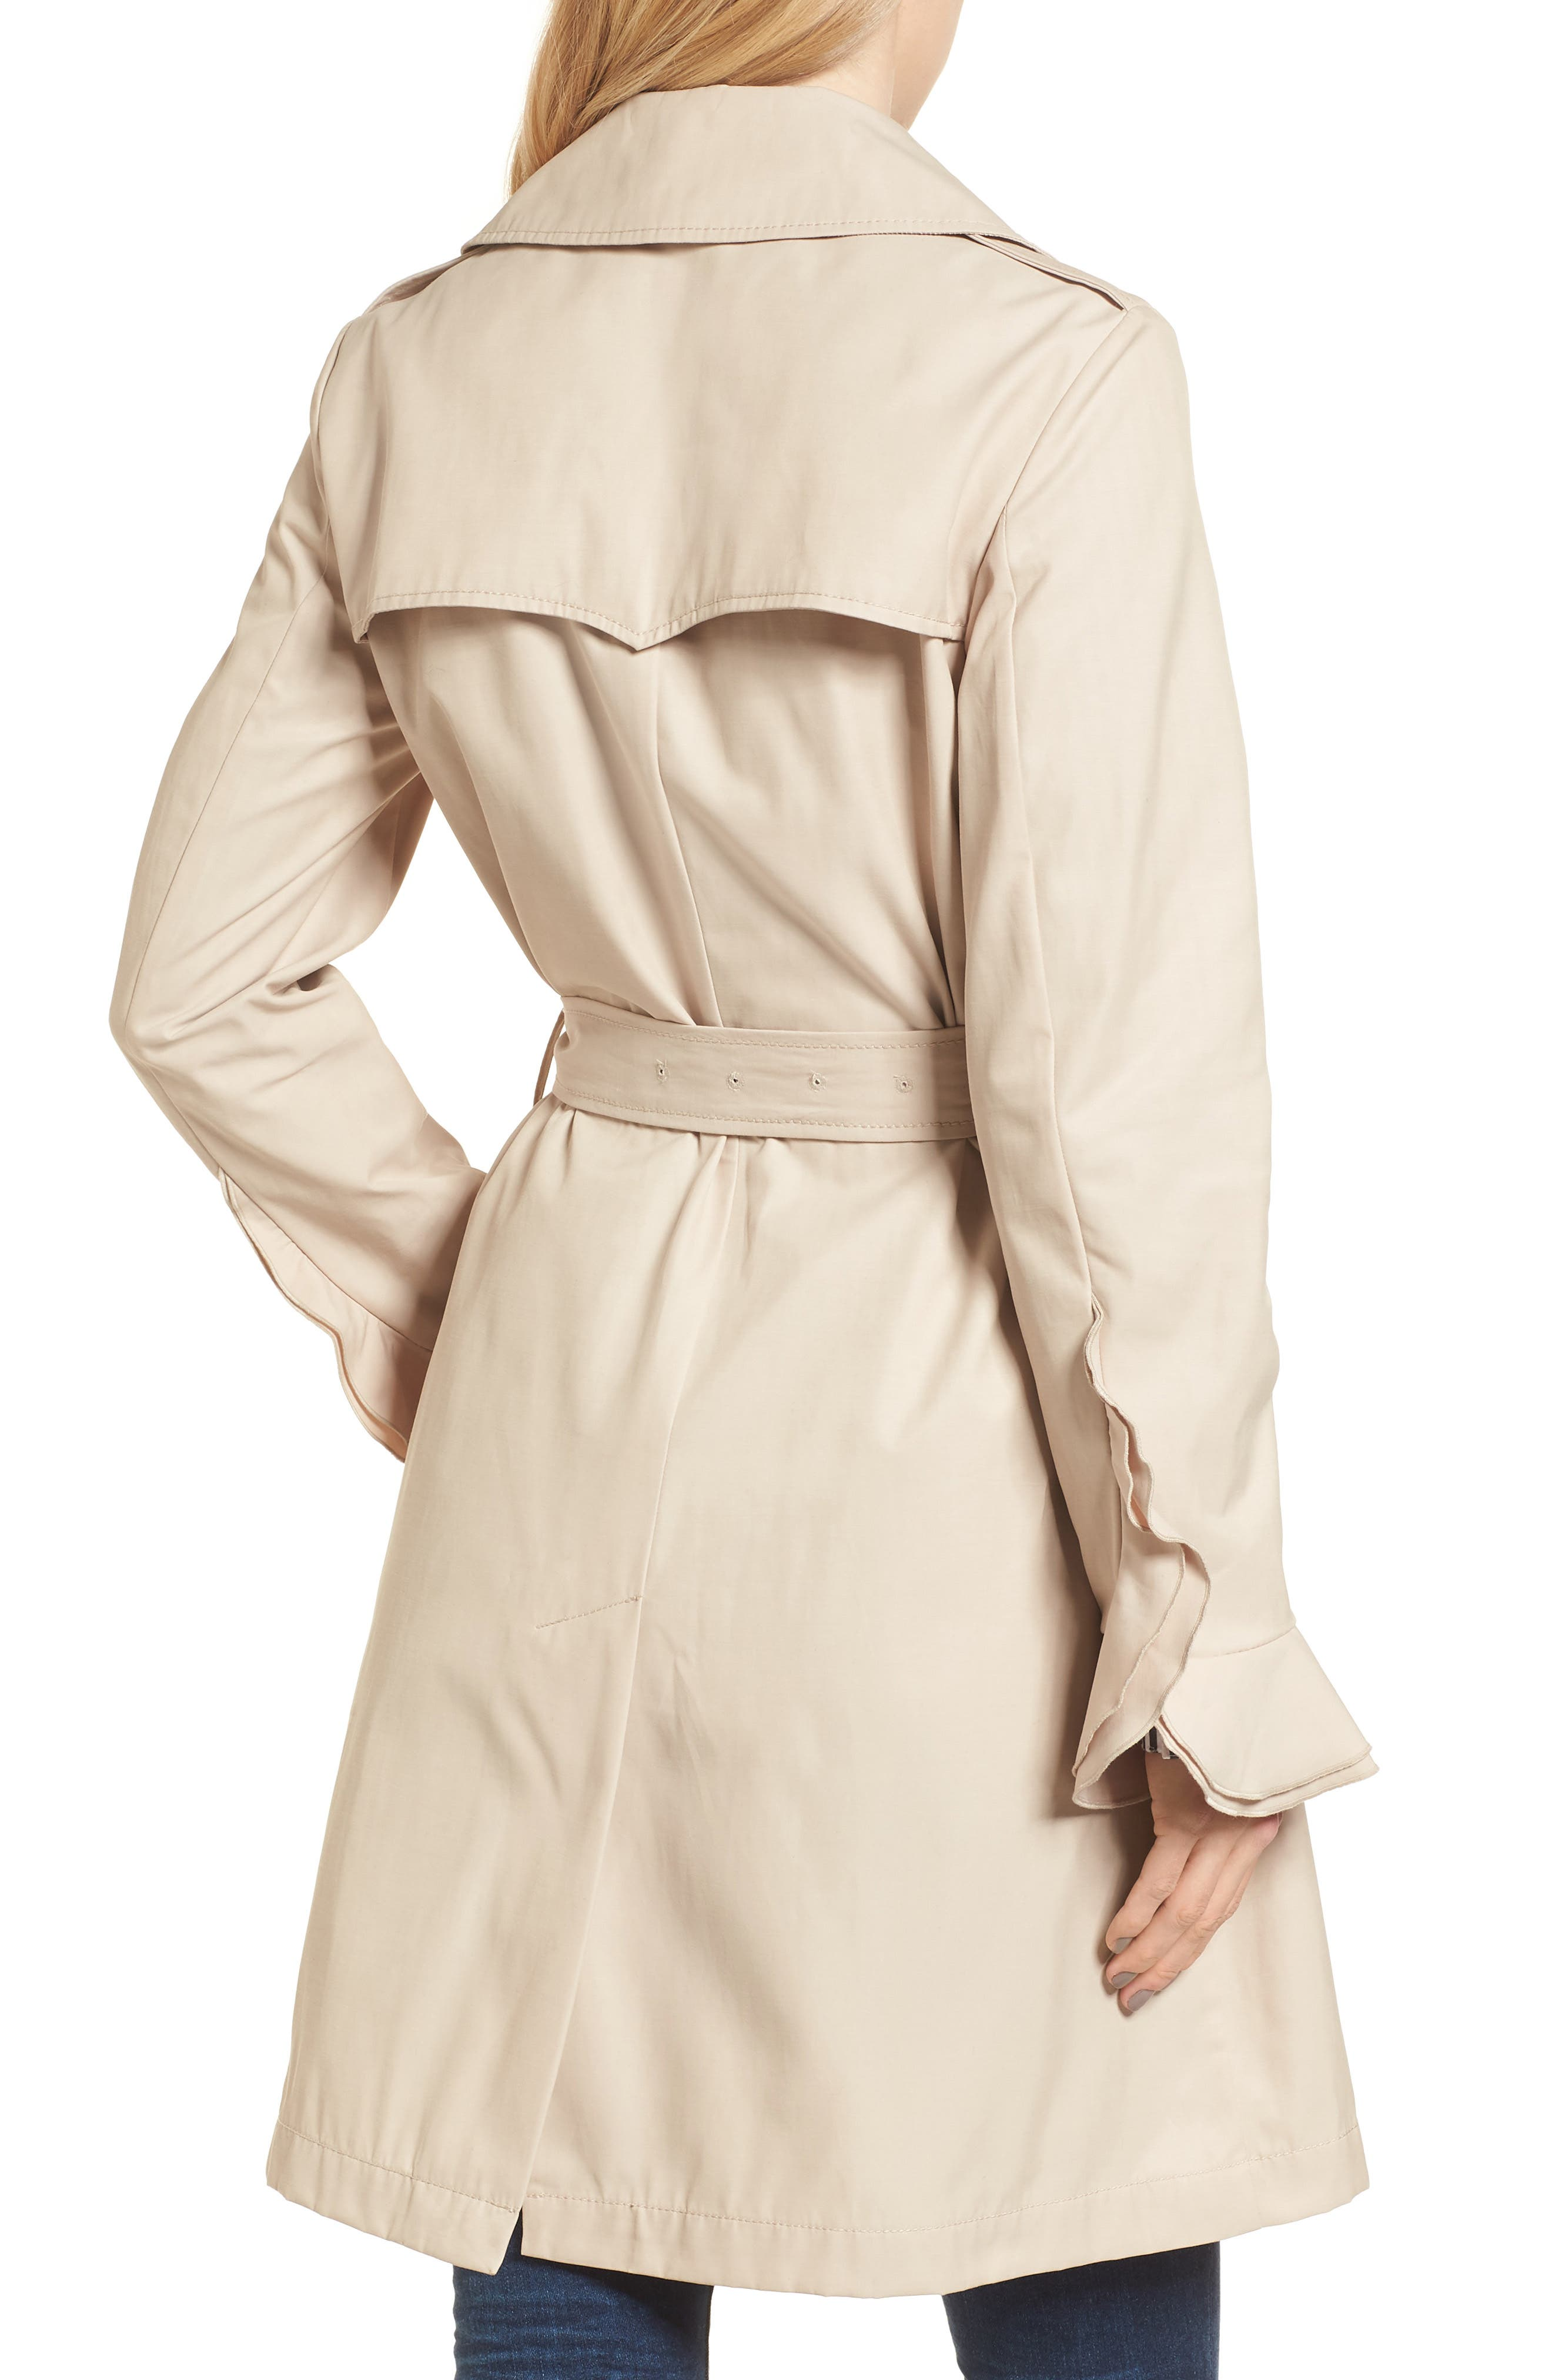 Stella Ruffle Sleeve Trench Coat,                             Alternate thumbnail 2, color,                             250